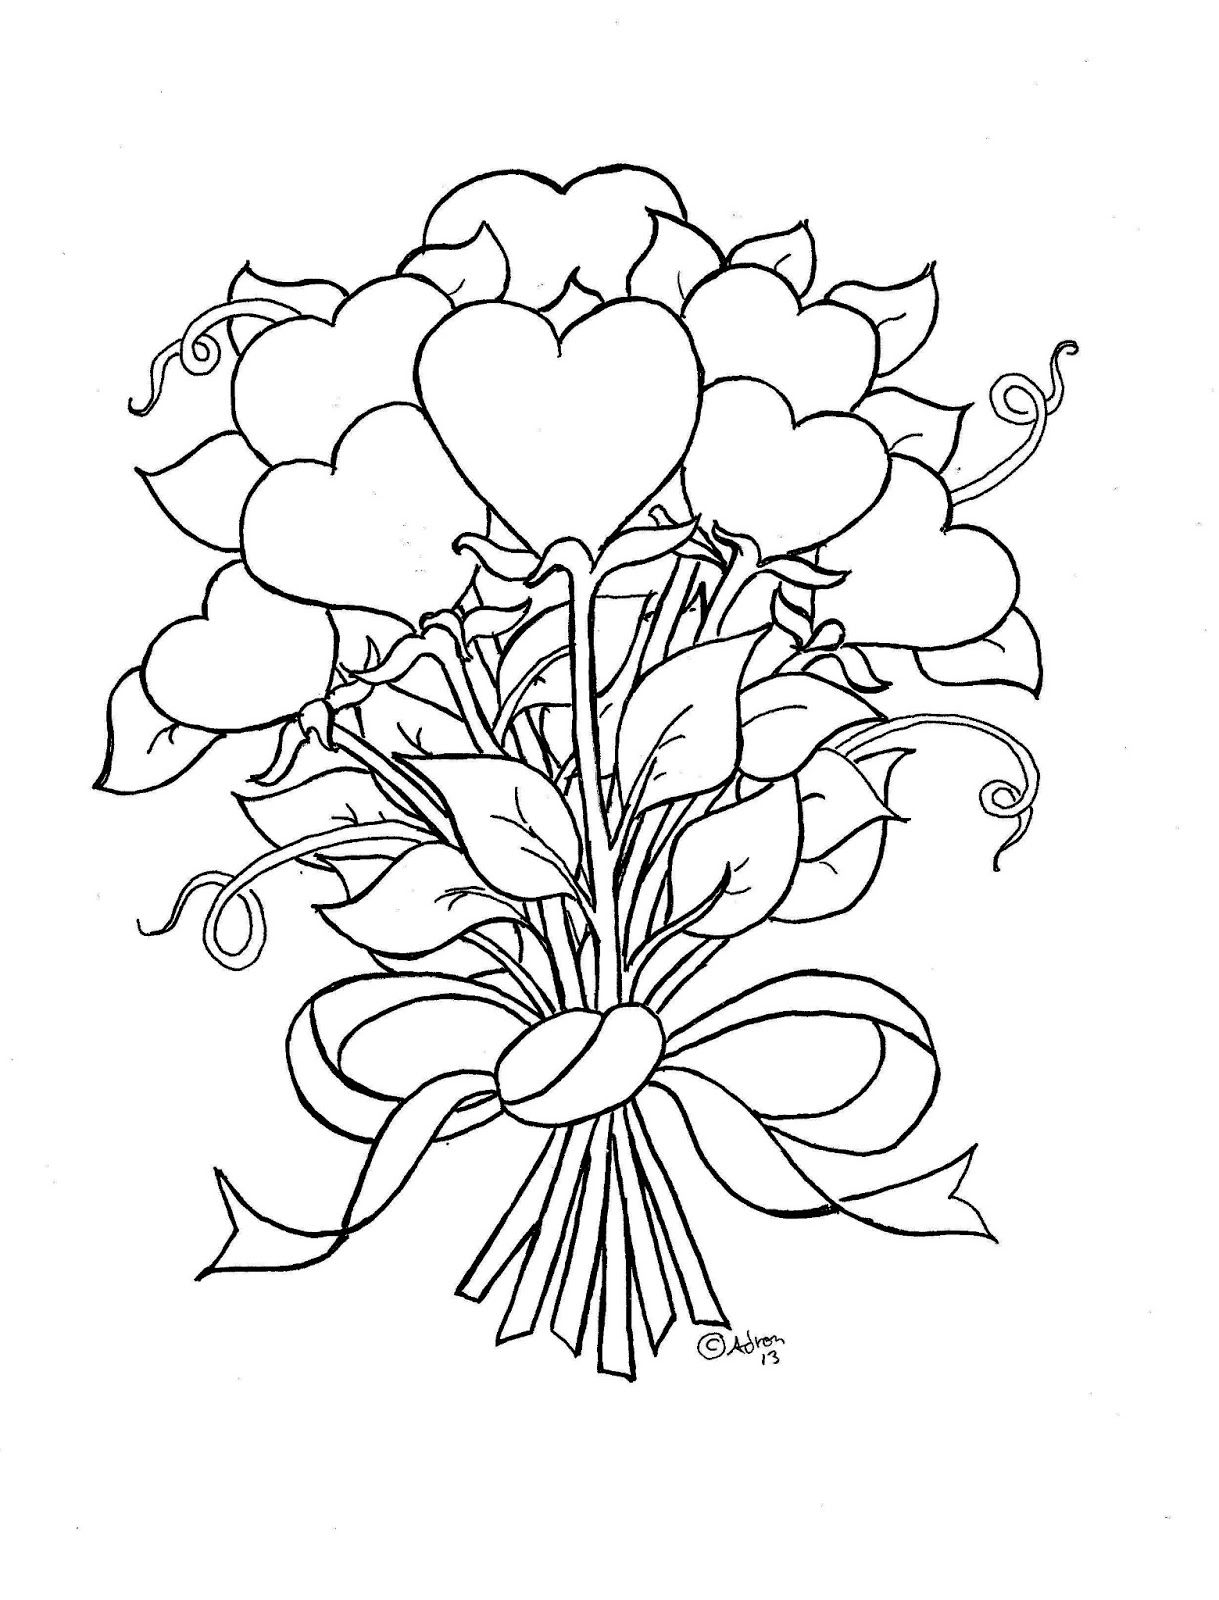 Flower Hearts Kid\'s Print and Color Page: Coloring suggestions at ...